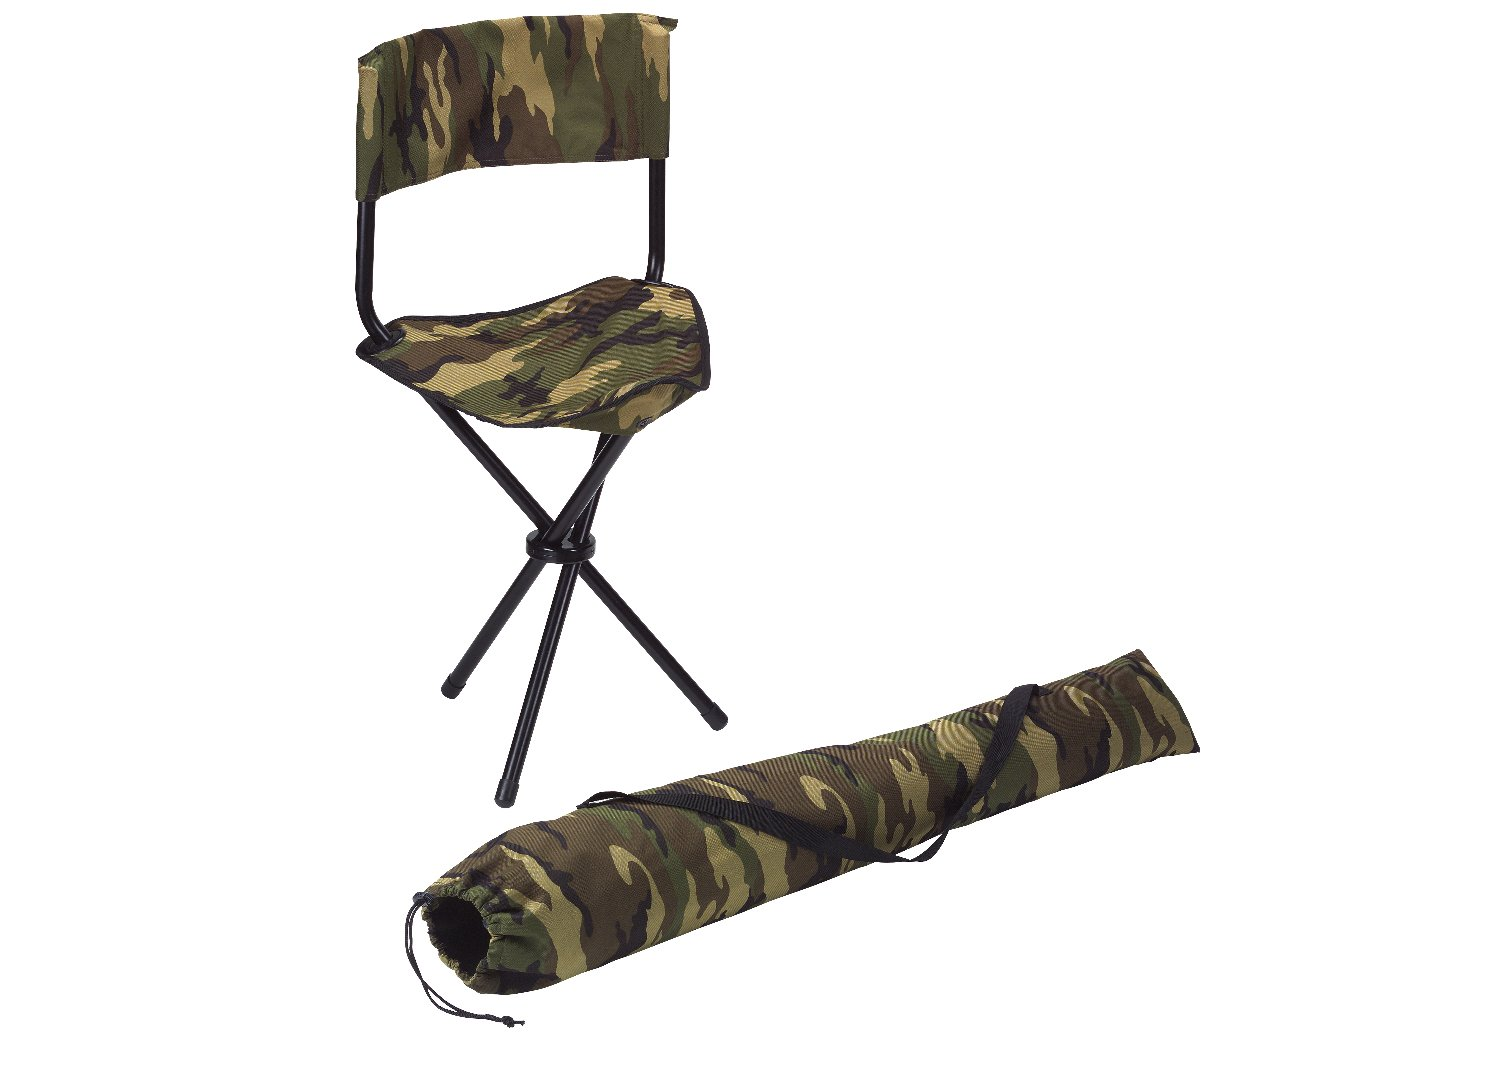 source: Woodland Camouflage Military Deluxe Collapsible Stool